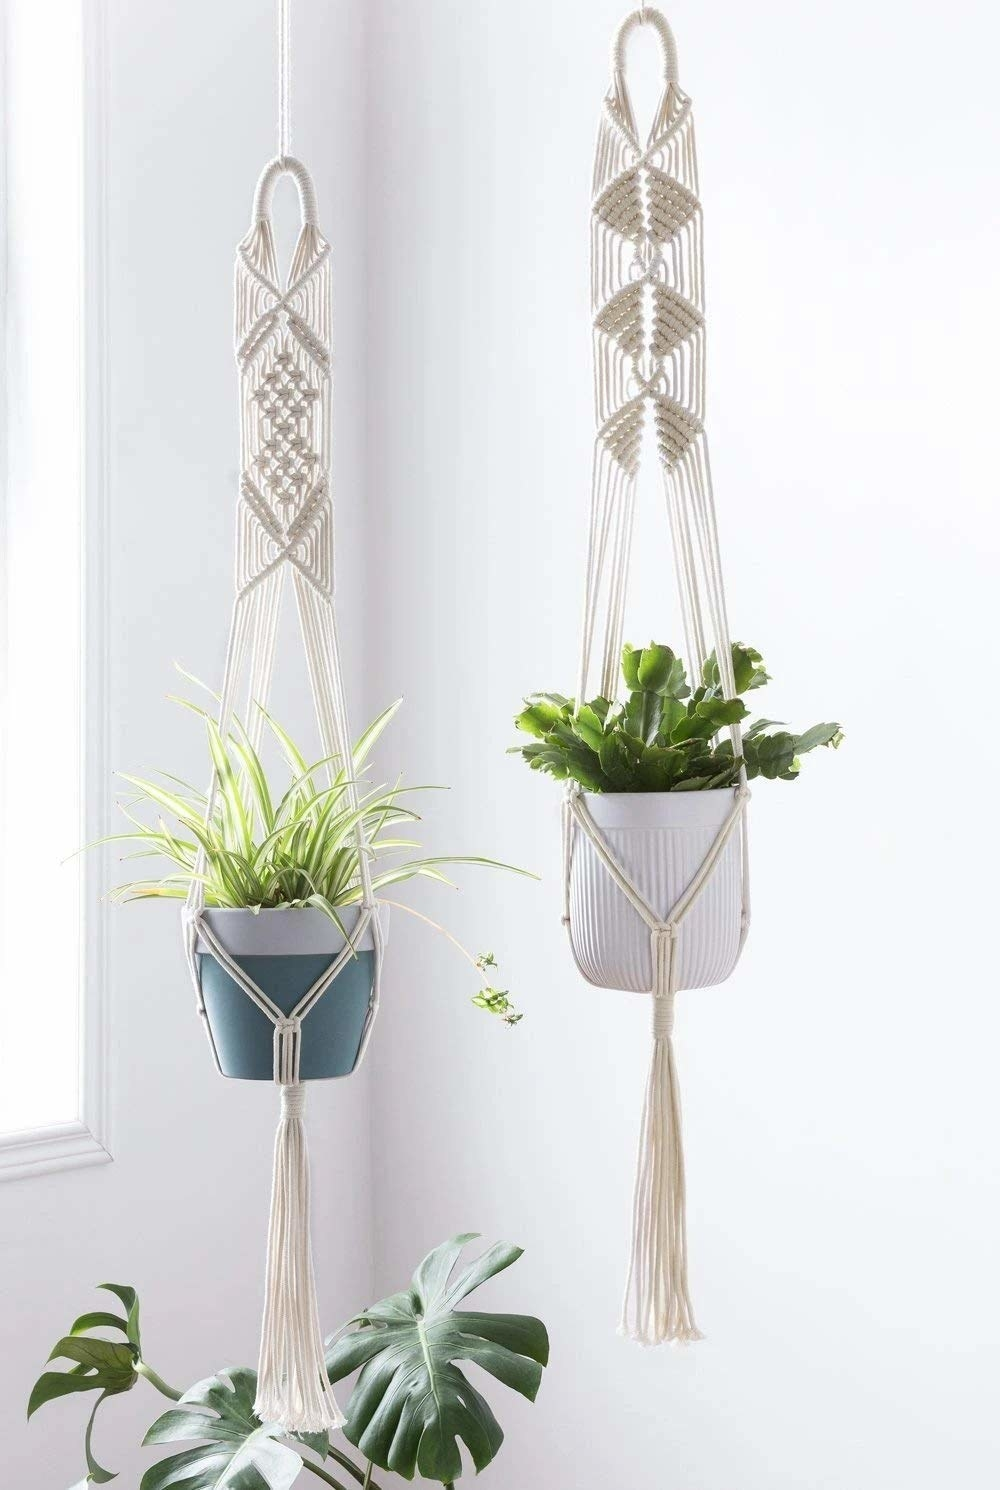 2 hanging macrame plant holders carrying two pots.